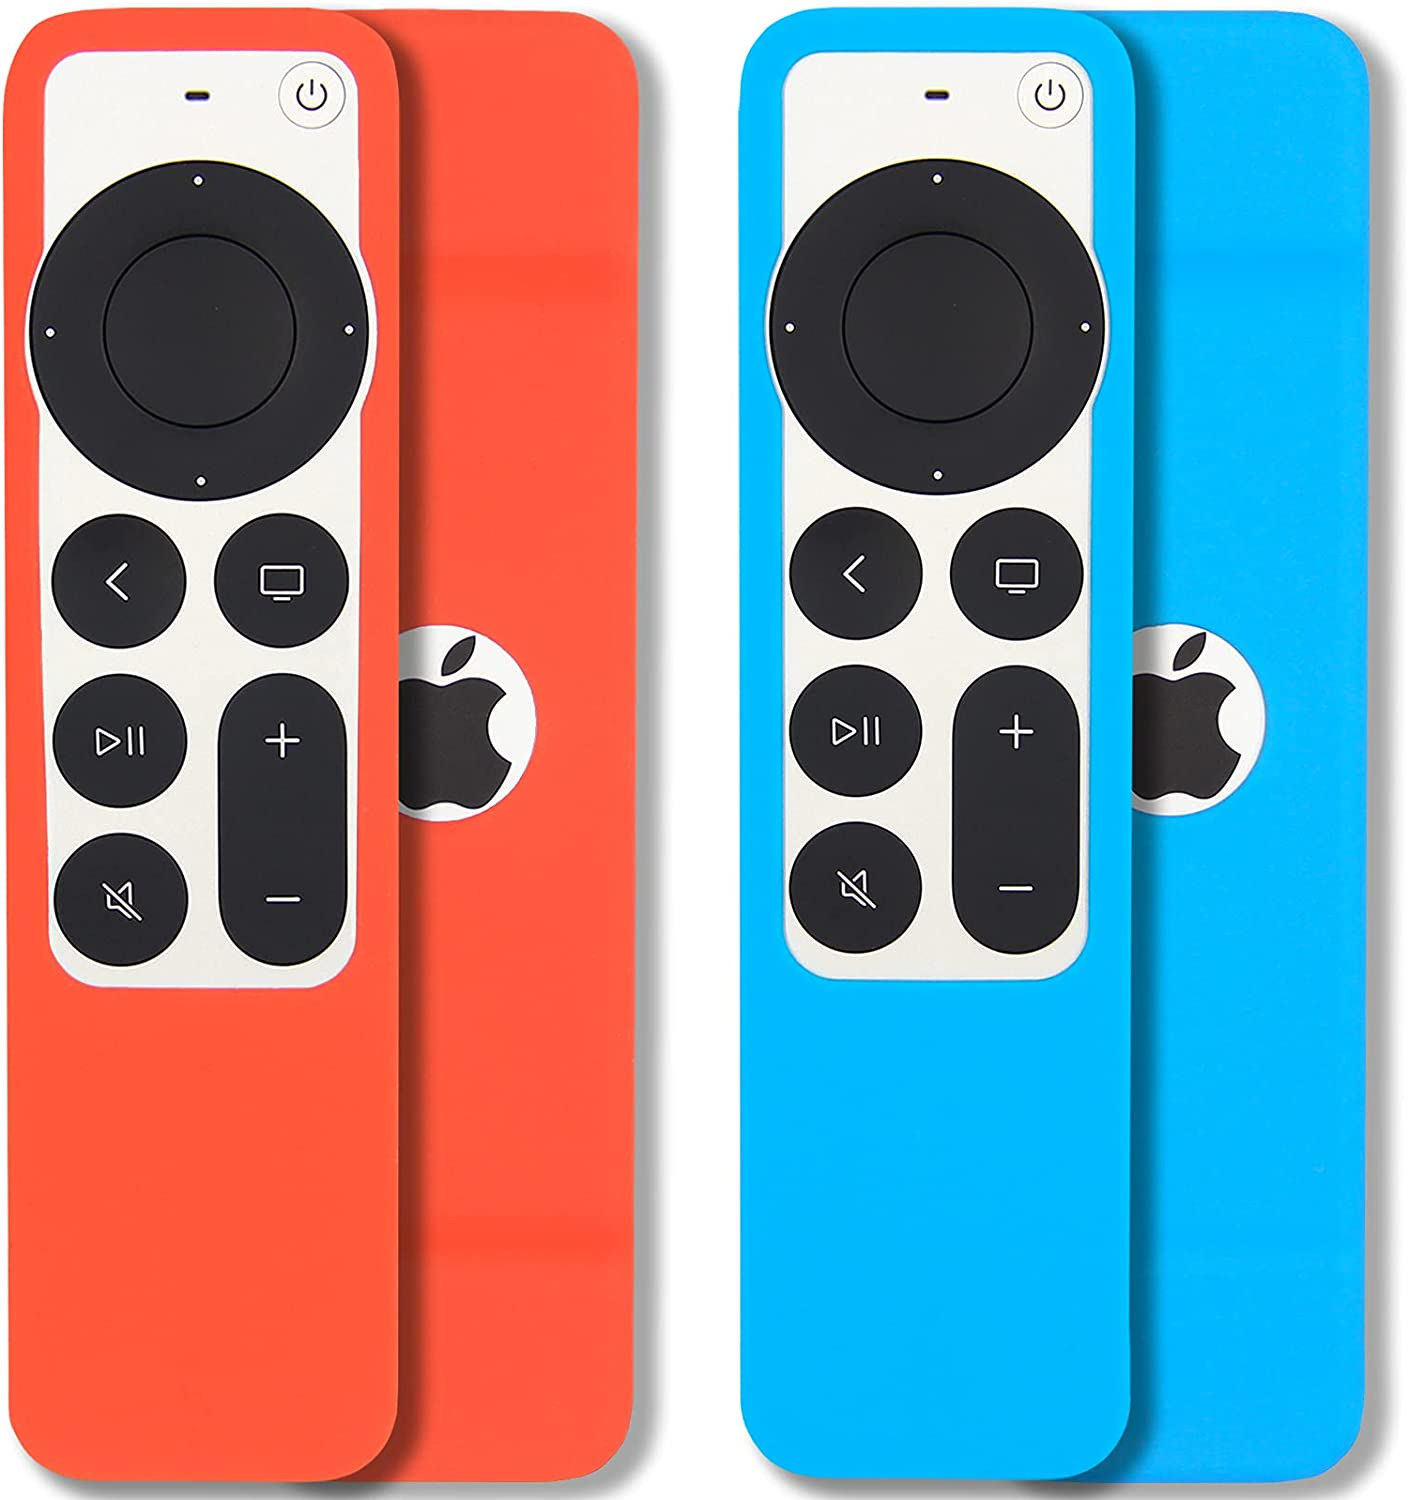 [2 Pack] Pinowu Remote Cover Case Compatible with 2021 Apple TV Siri Remote (2nd Generation) - Lanyard Included, Anti Slip, Shock Absorption Cover Skin (Sky Blue and Red)